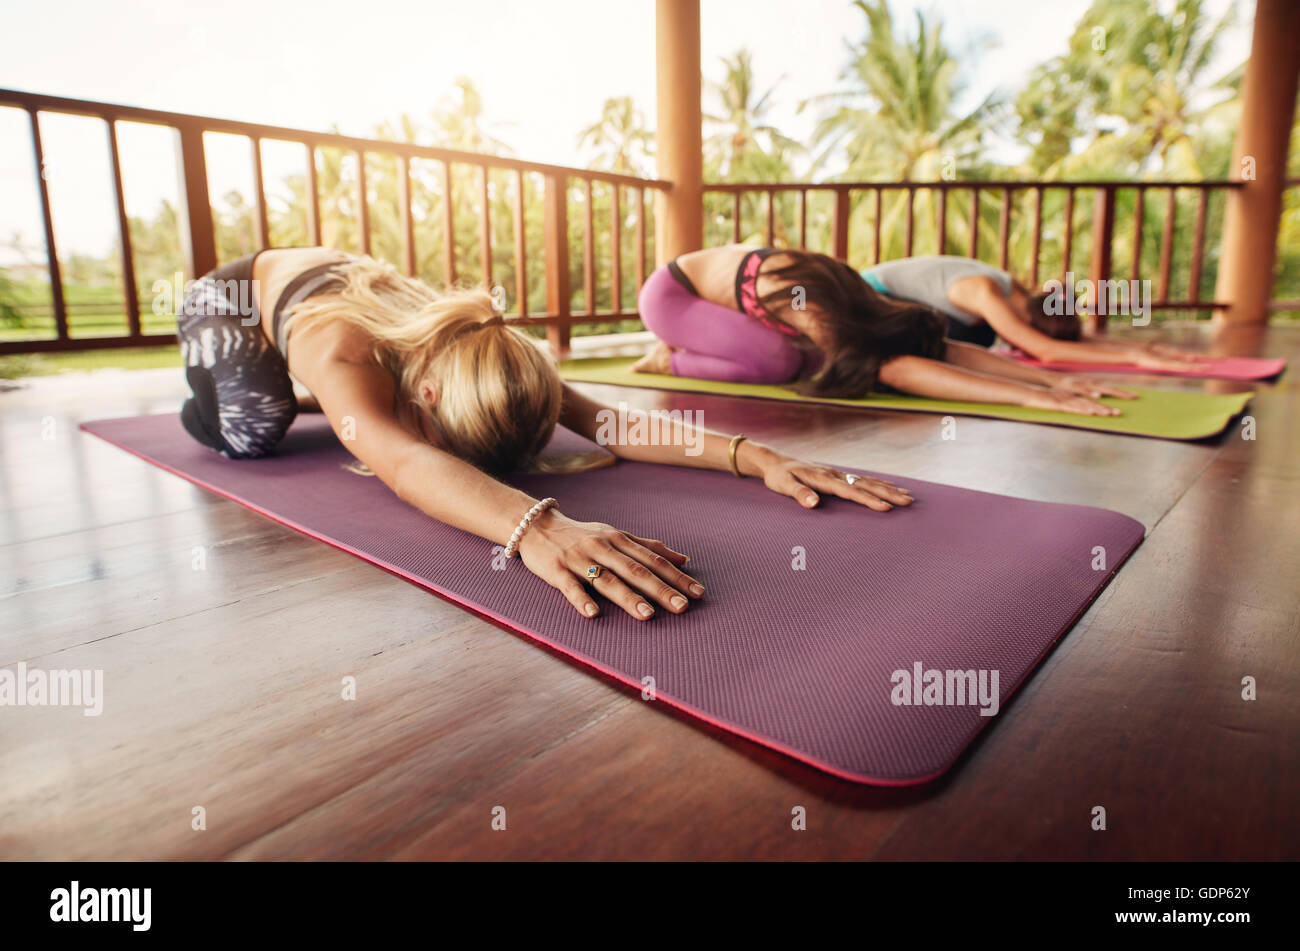 Group of young women doing stretching workout on fitness mat. Women at yoga class bending forward on their yoga - Stock Image